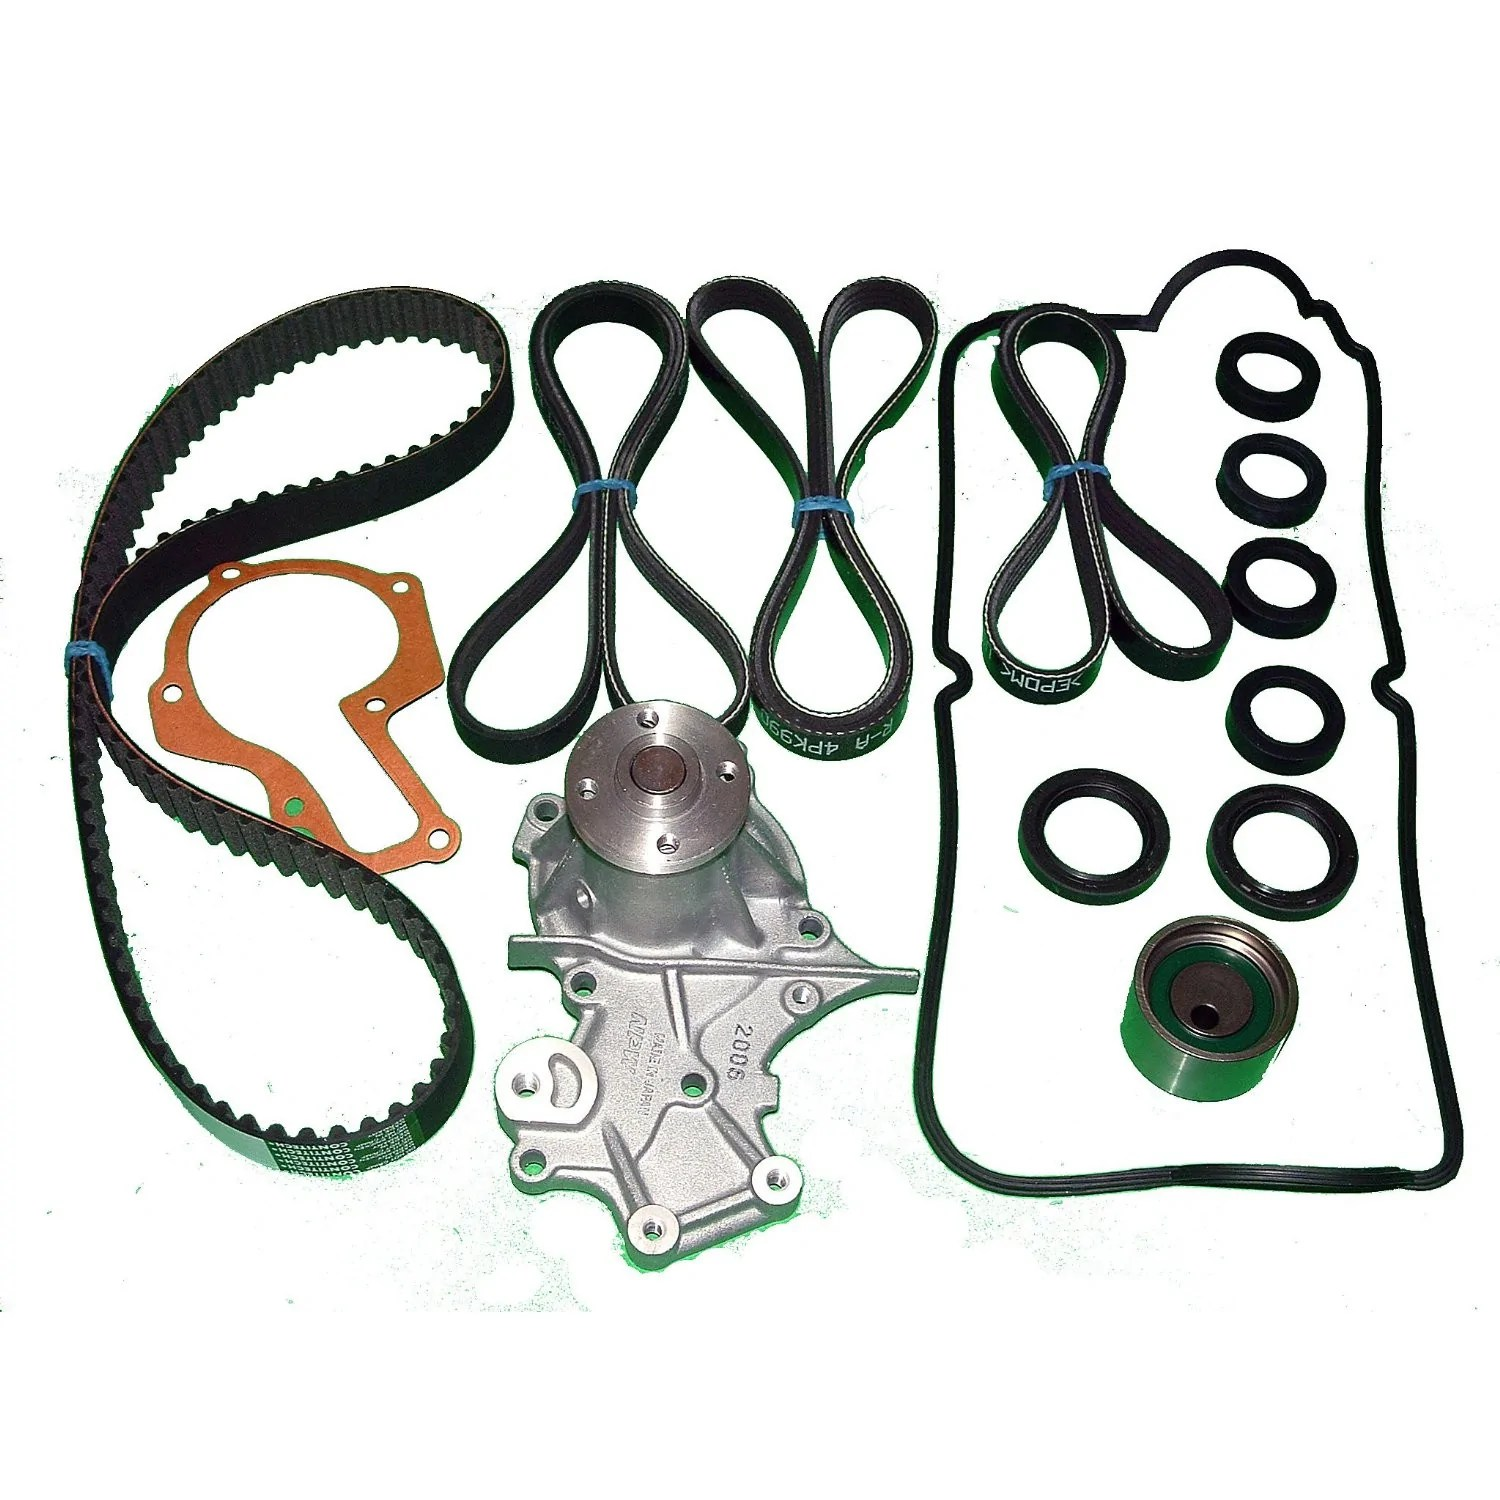 timing belt kit suzuki esteem 1 6l 2000 1999 1998 1997 1996 1995  [ 1500 x 1500 Pixel ]